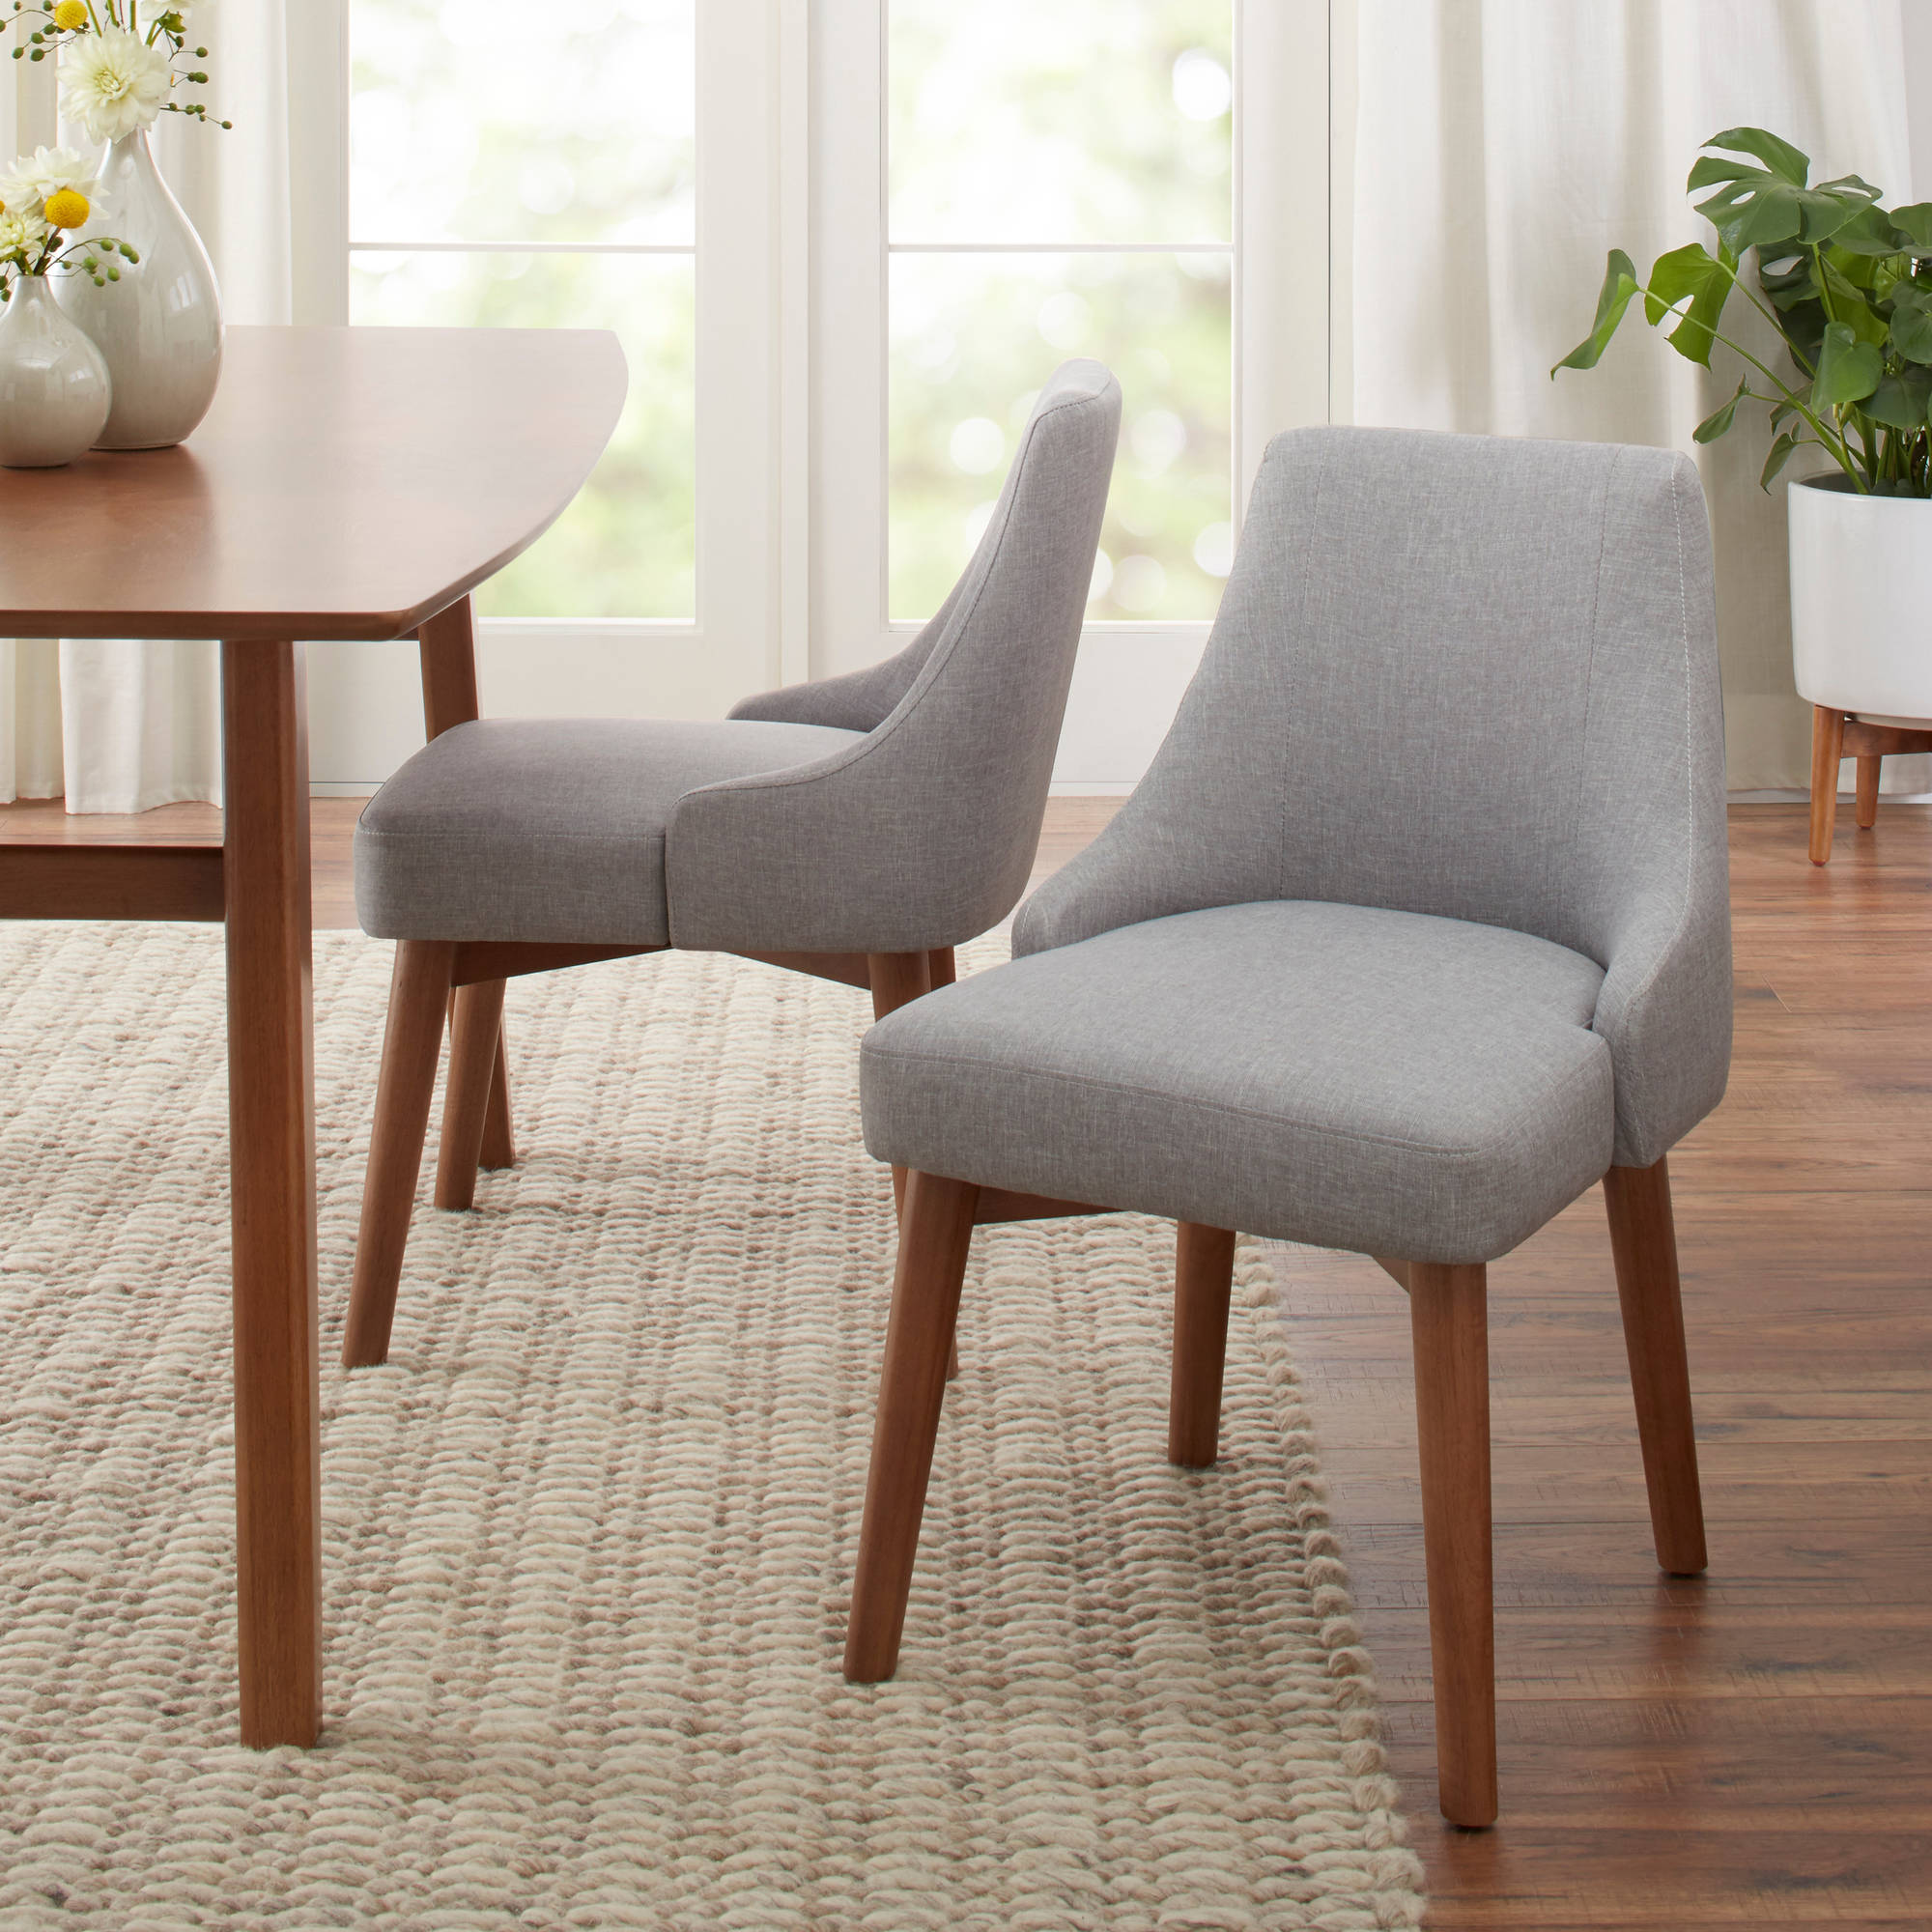 Better Homes and Gardens Reed Mid Century Modern Dining Chair Set